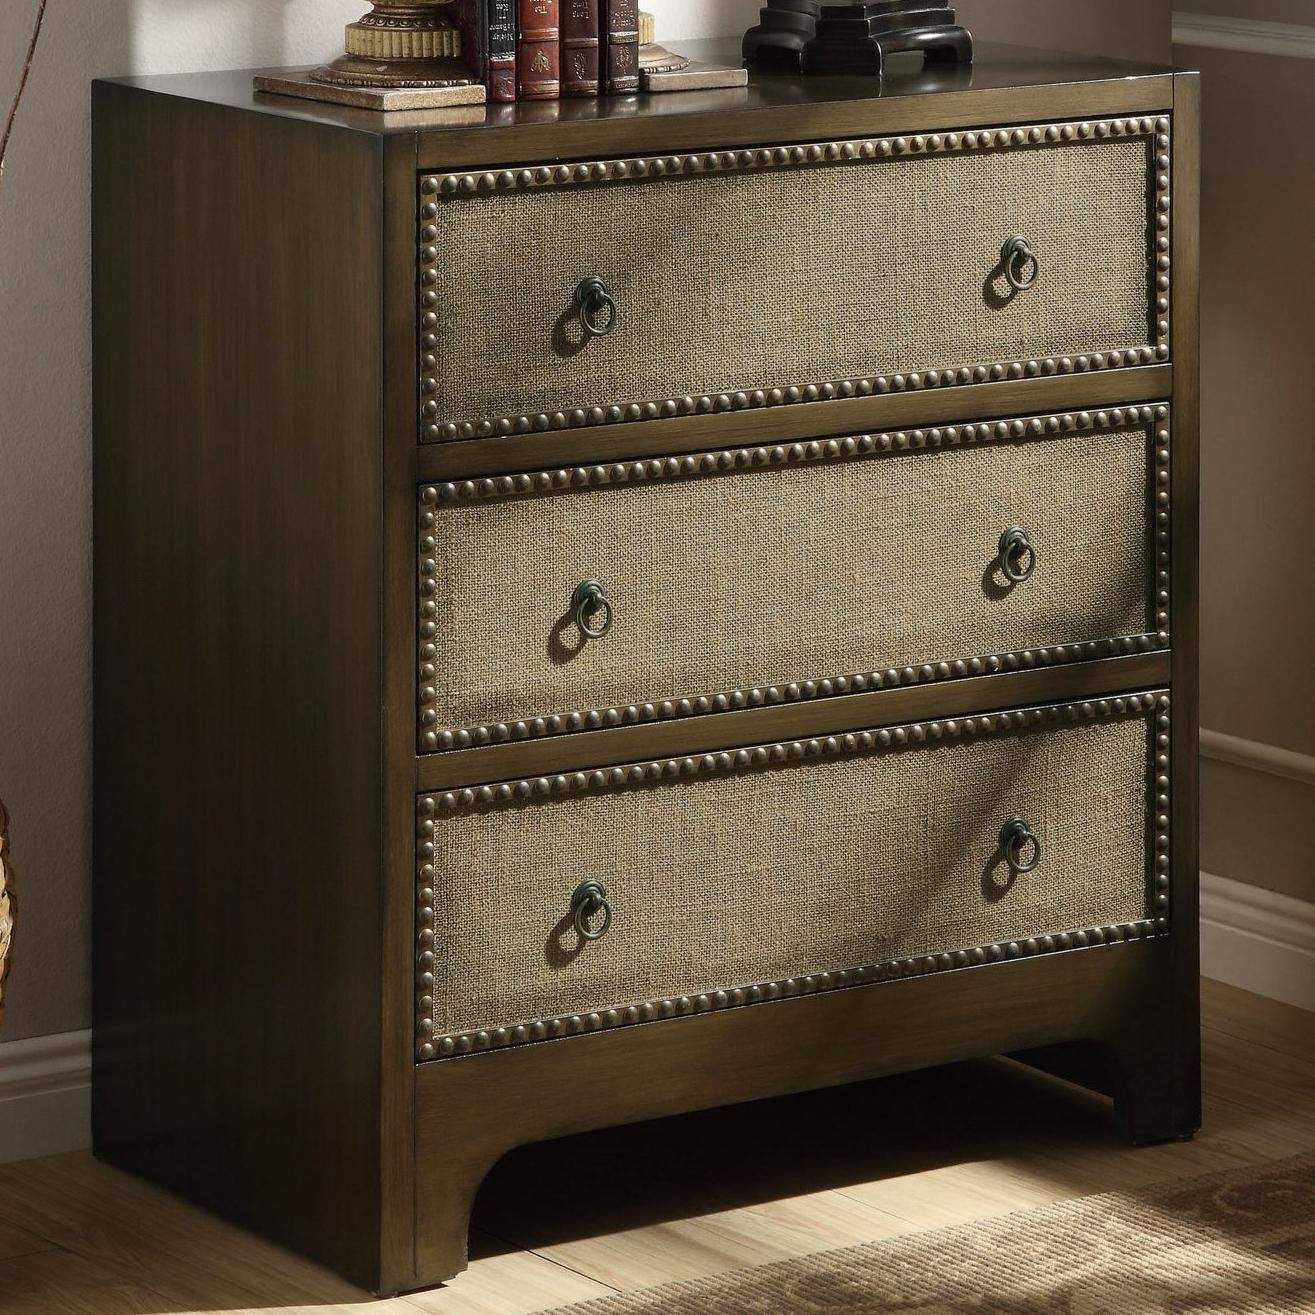 Accent Cabinets 3 Drawer Cabinet With Linen Drawer Fronts Quality Furniture At Affordable